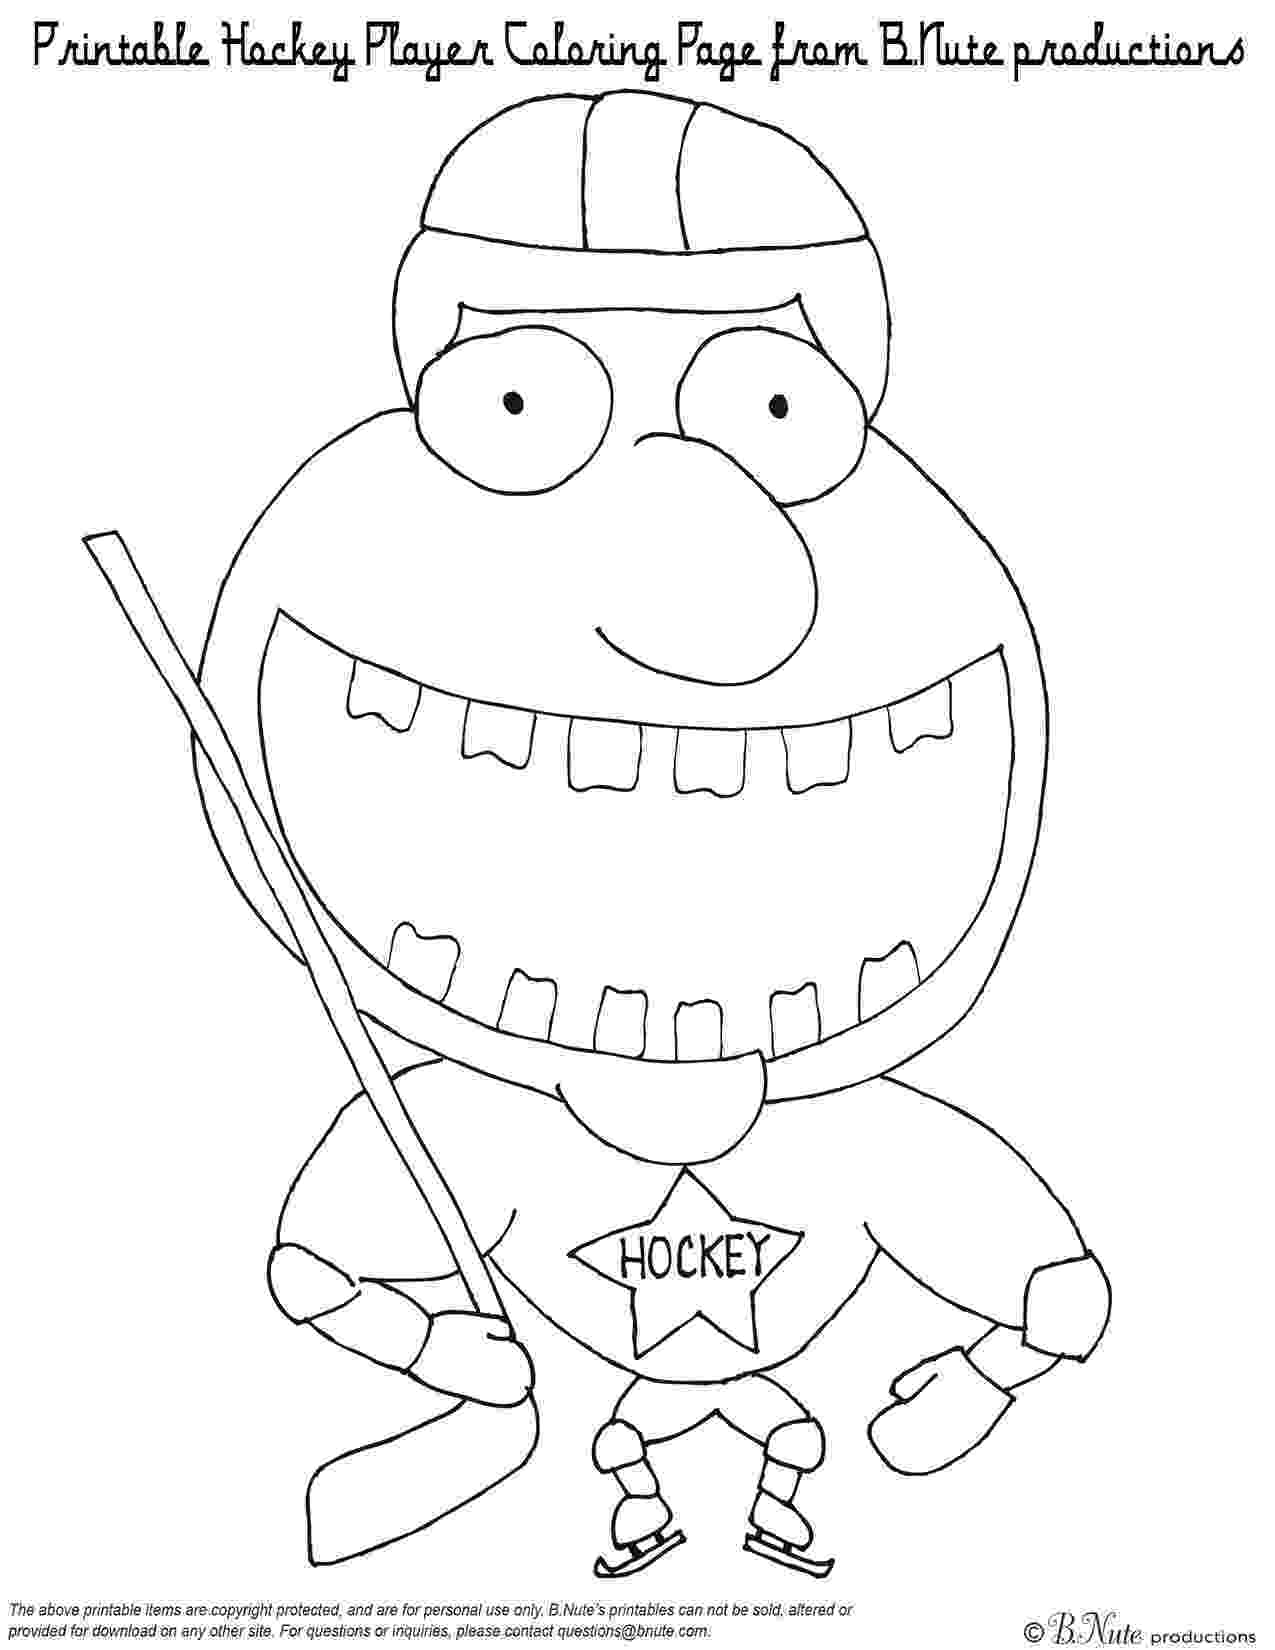 printable hockey coloring pages hockey player coloring pages to download and print for free pages printable coloring hockey